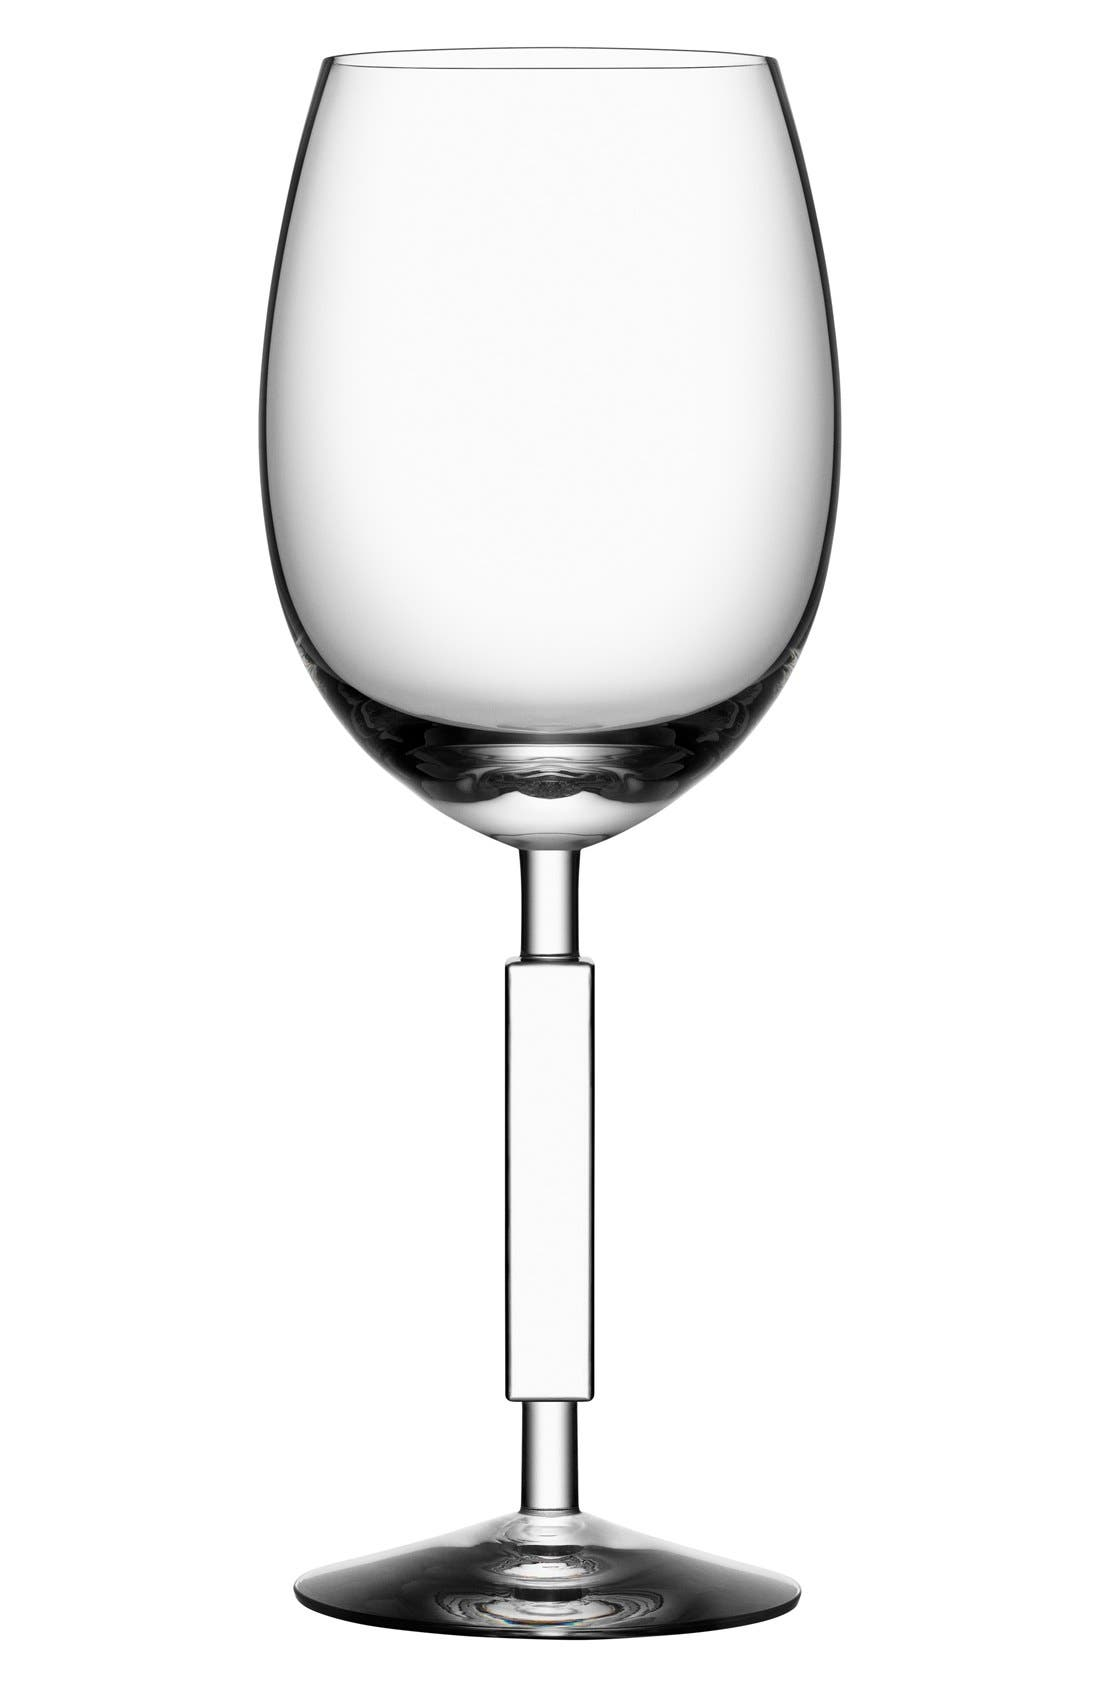 Alternate Image 1 Selected - Orrefors'Unique' WhiteWine Glass